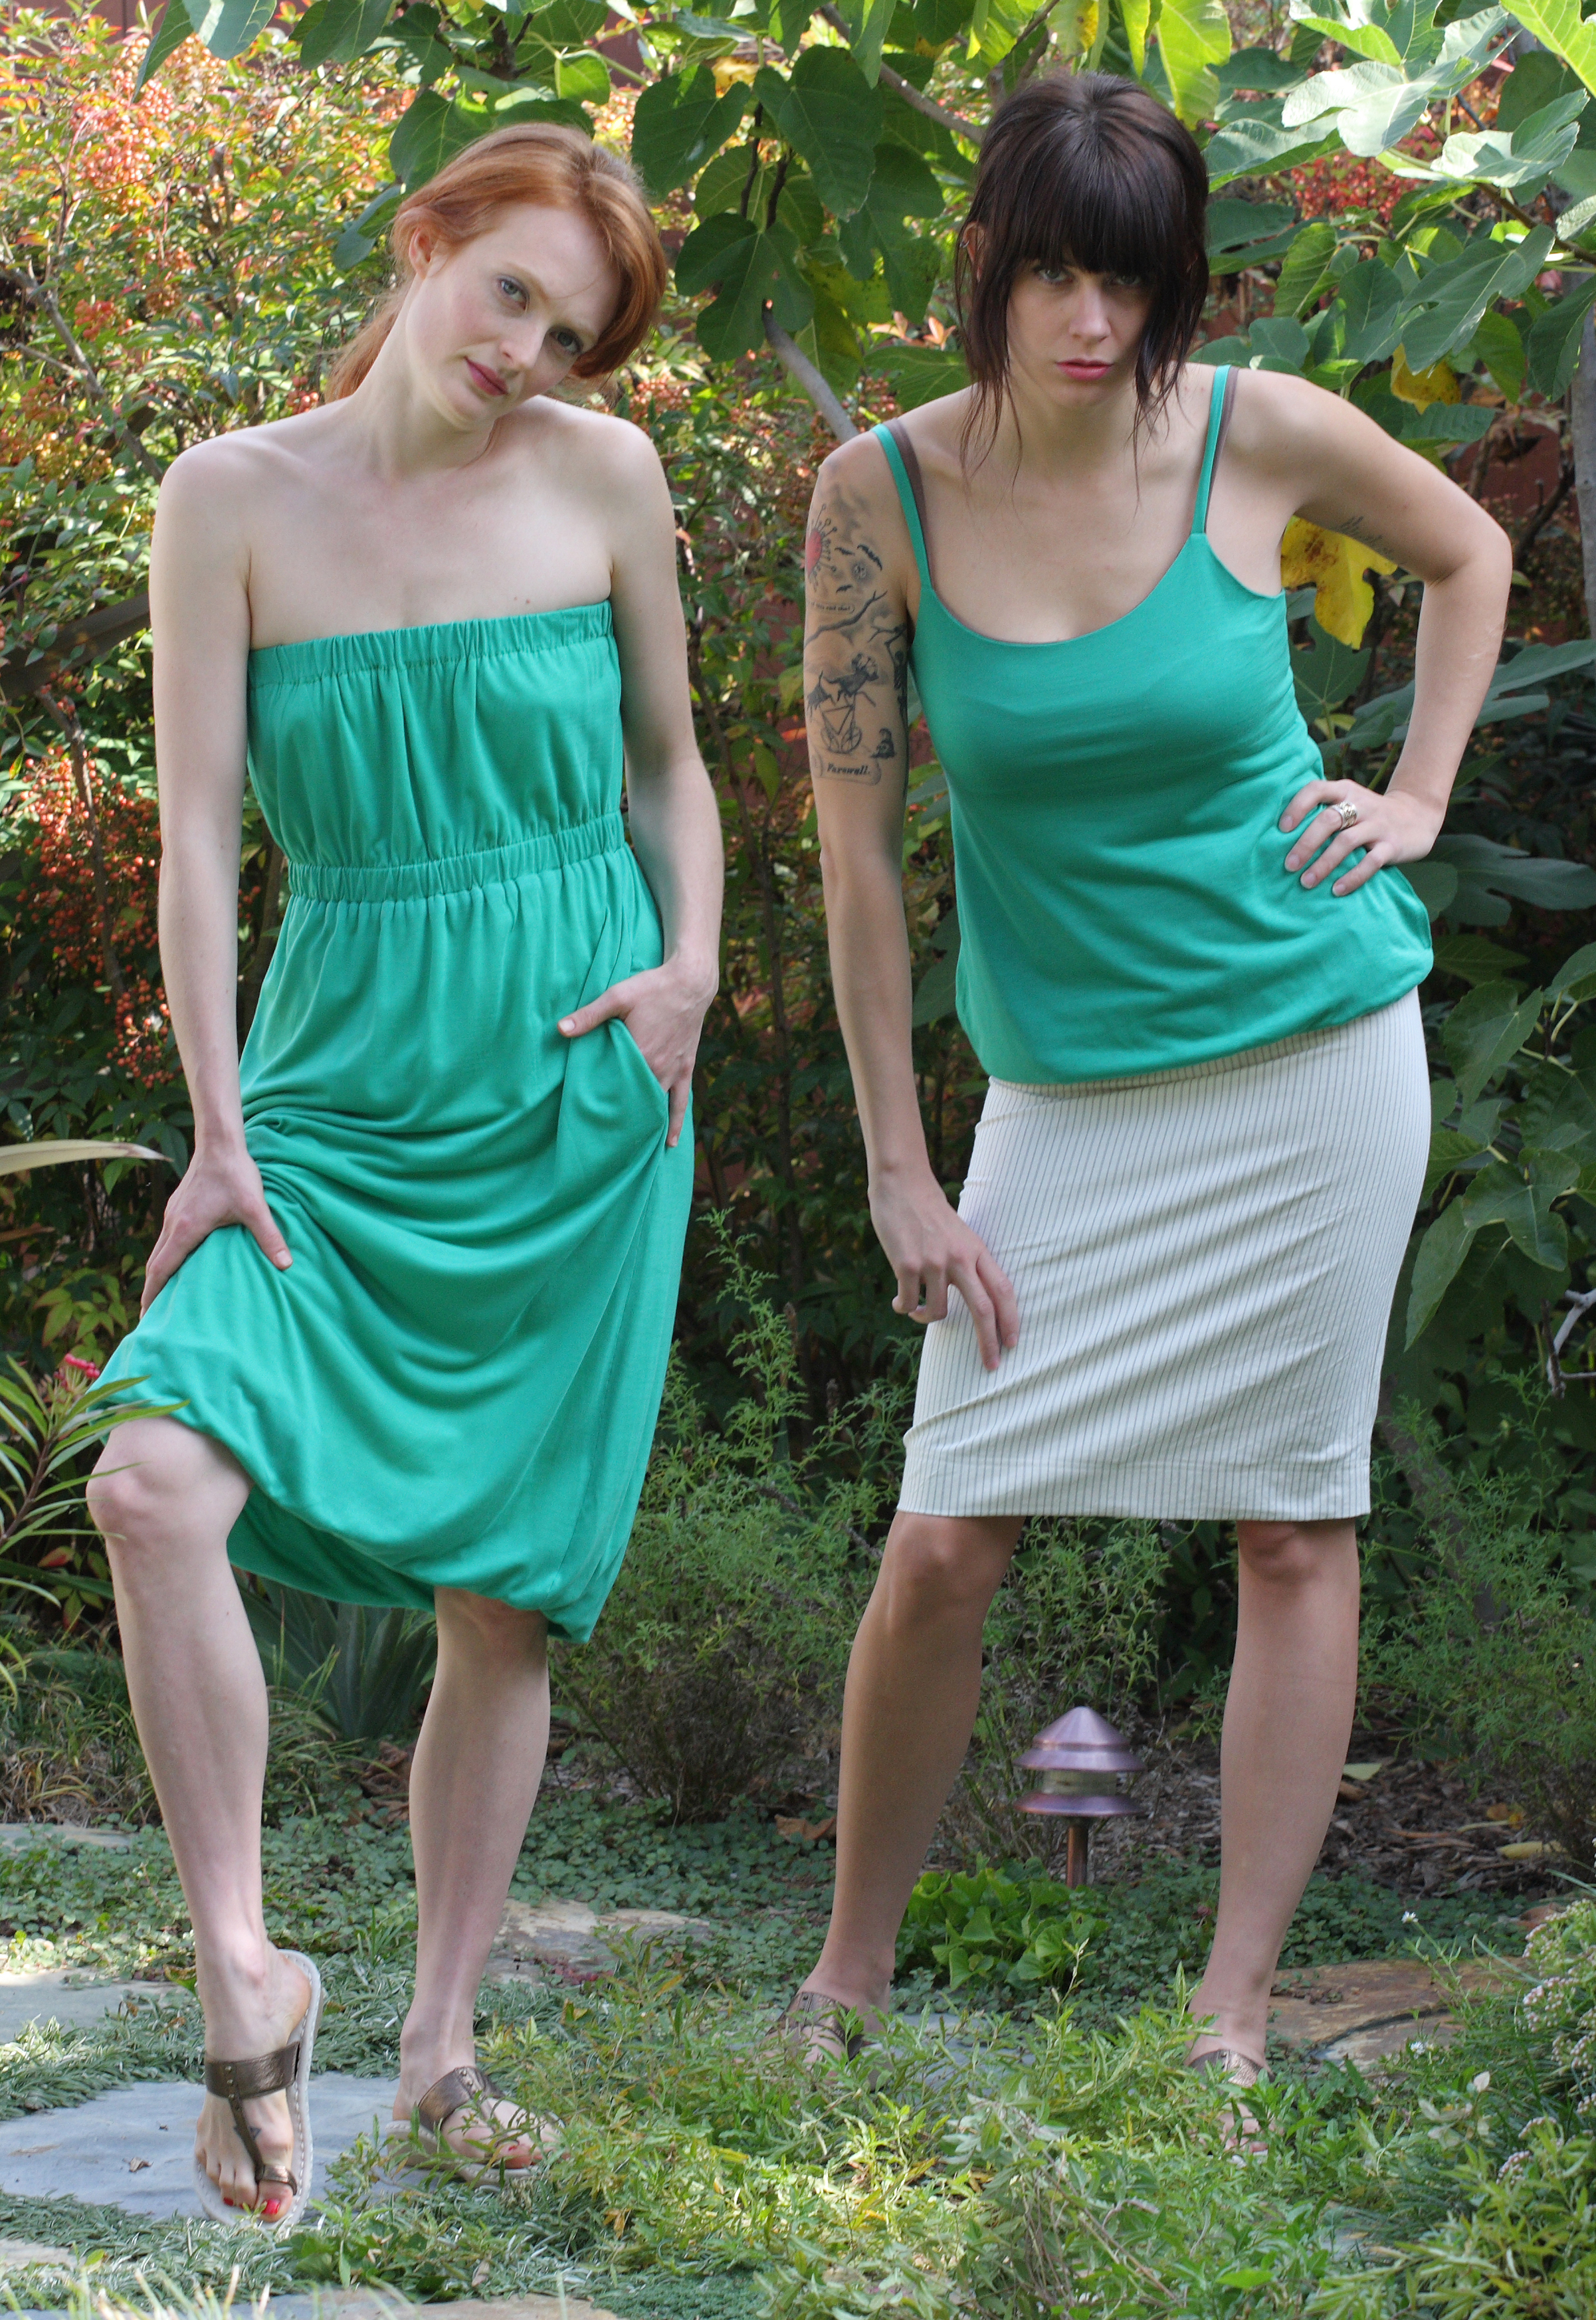 Strapless Pull-On Reversible Dress w/ Pockets in Emerald Butter Jersey  Empire Reversible Blouson Tank w/ Pockets in Emerald Butter Jersey   High Waist Pencil Skirt in Pinstriped Cotton Twill